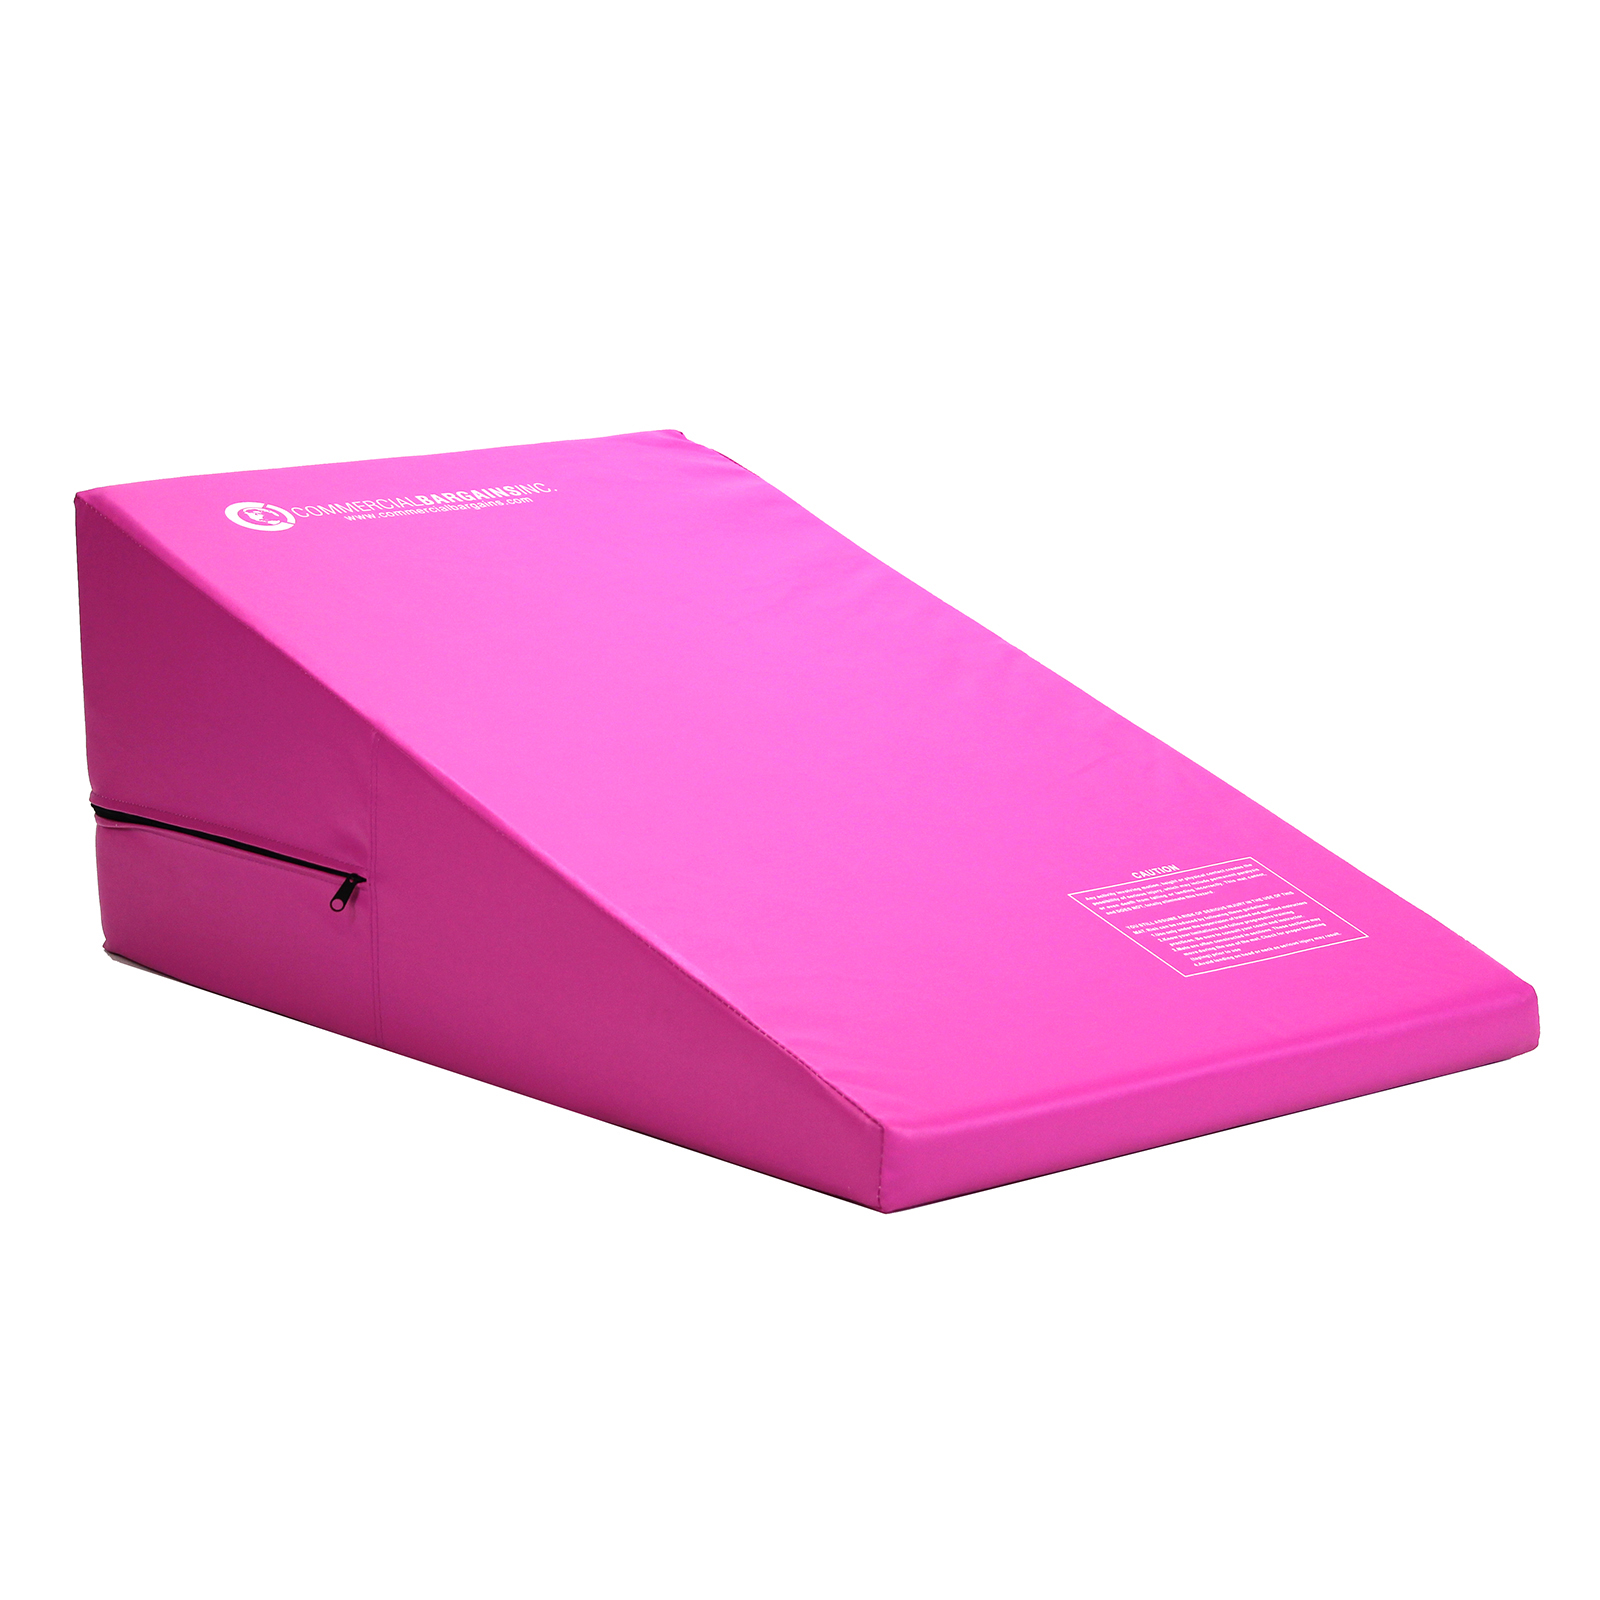 tumbling dp shape amazon mats gymnastics practice outdoors incline for incstores com exercise wedge mat ideal sports